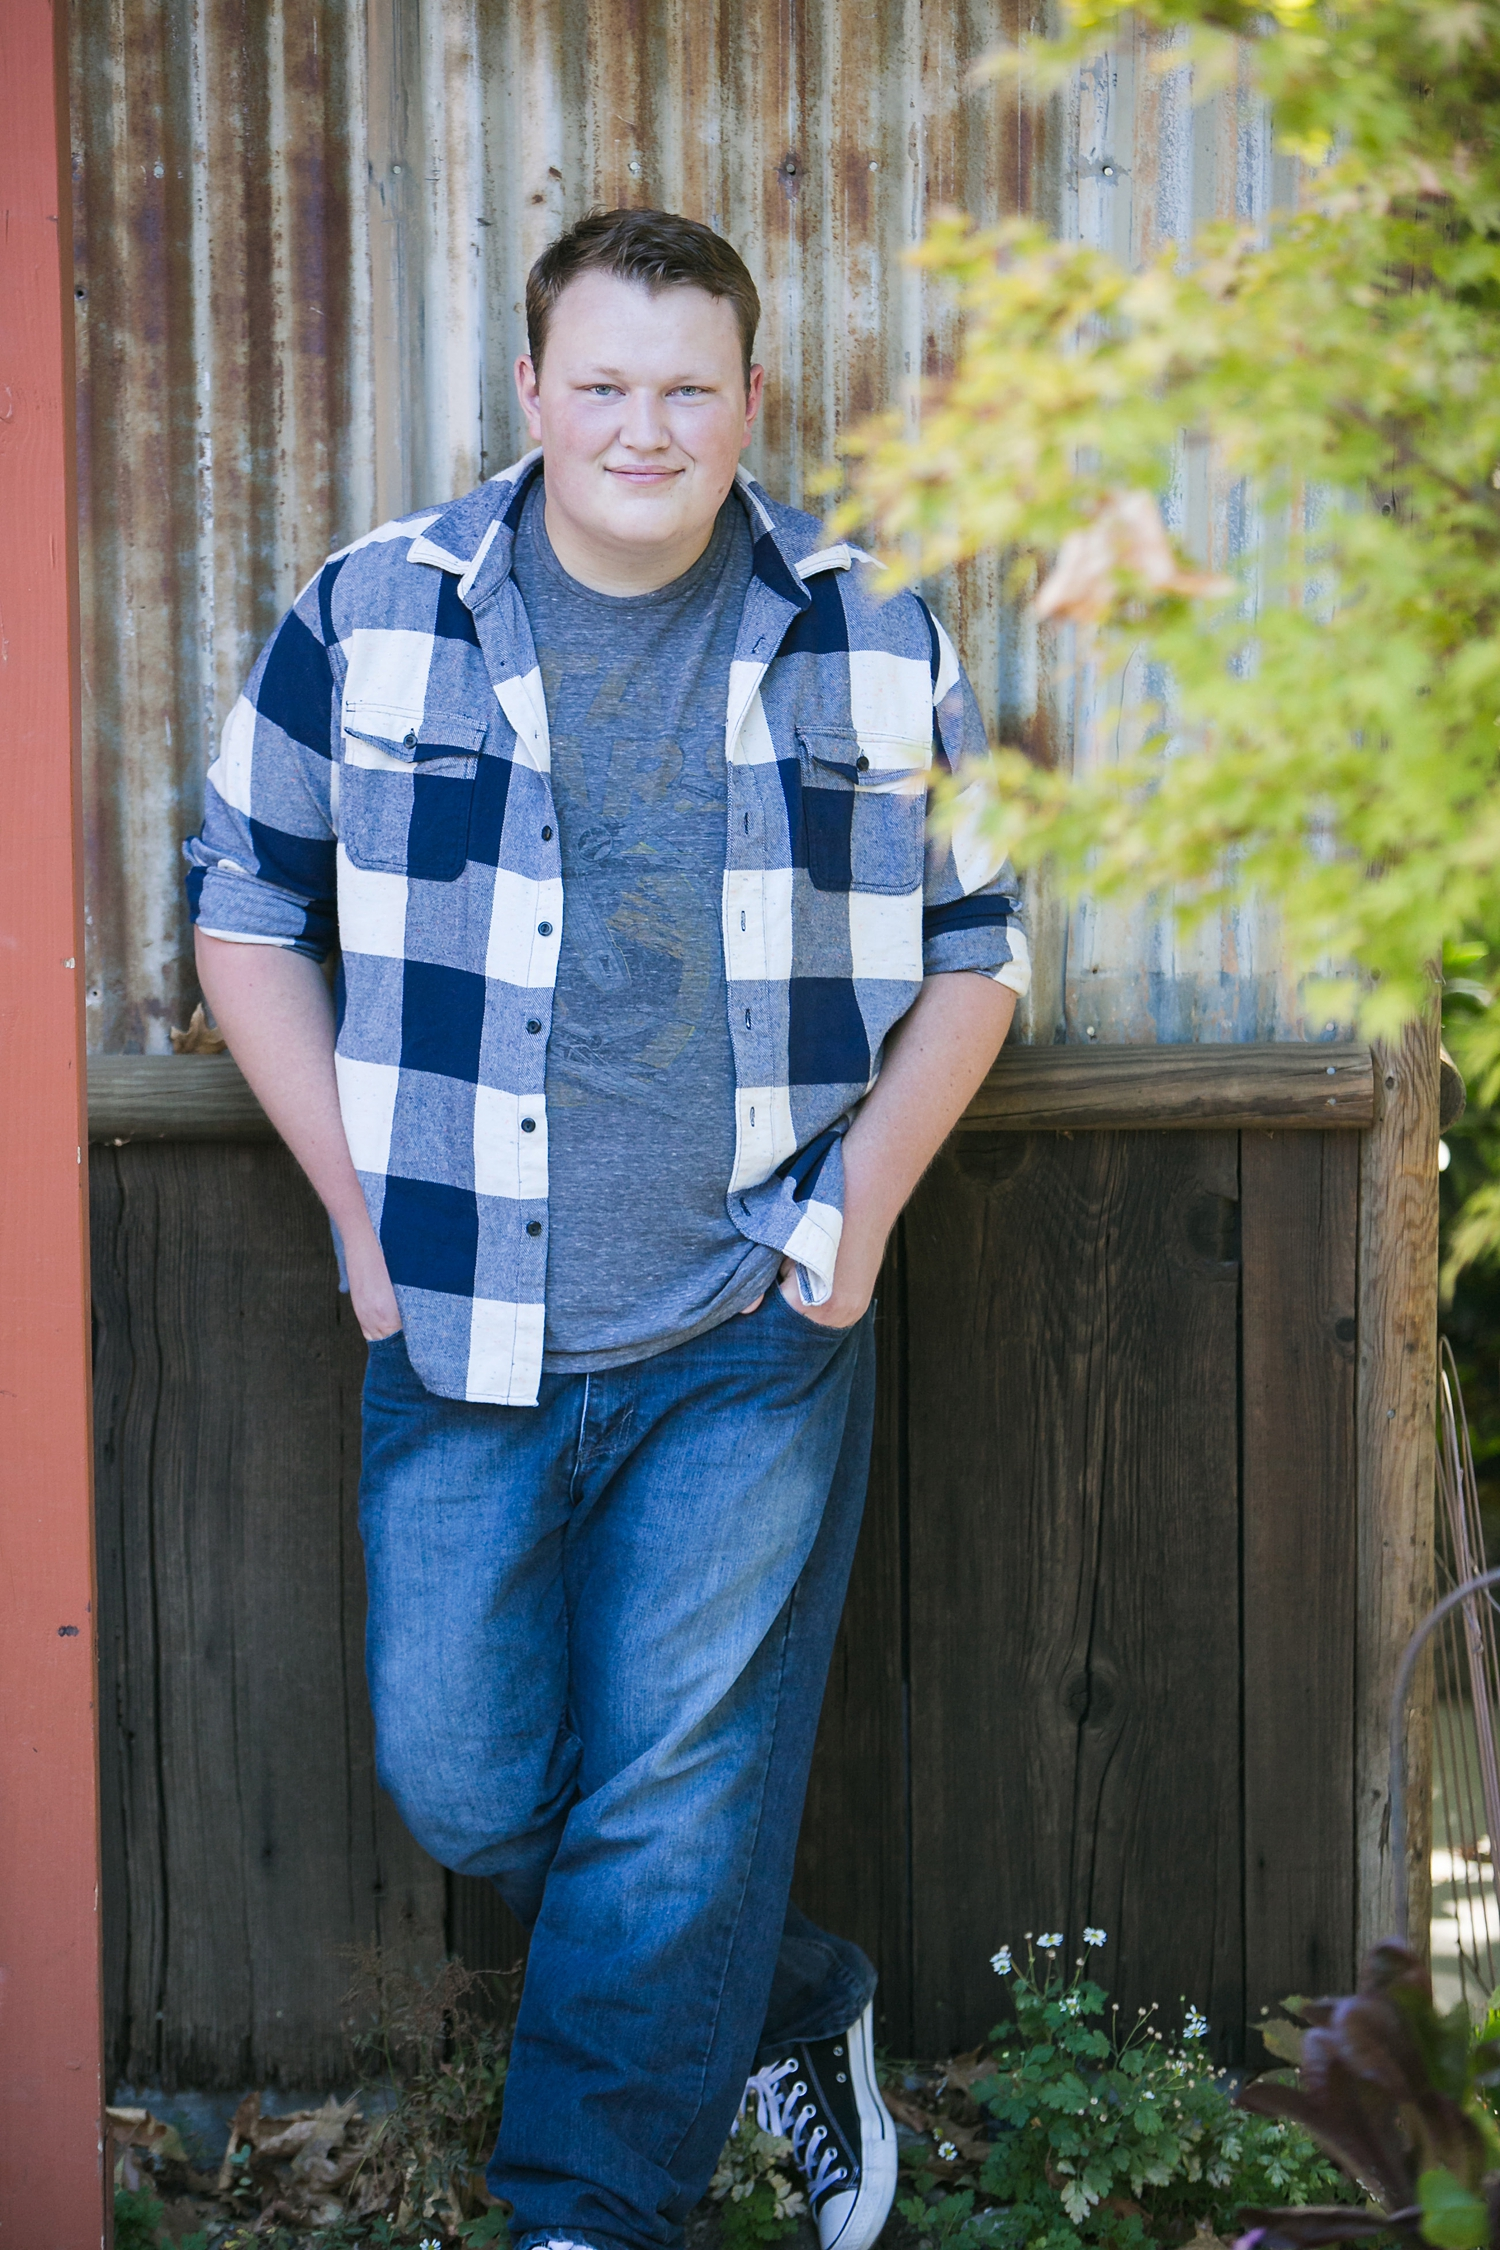 styled-senior-portrait-session-redlands-senior-photographer-carrie-vines123.jpg